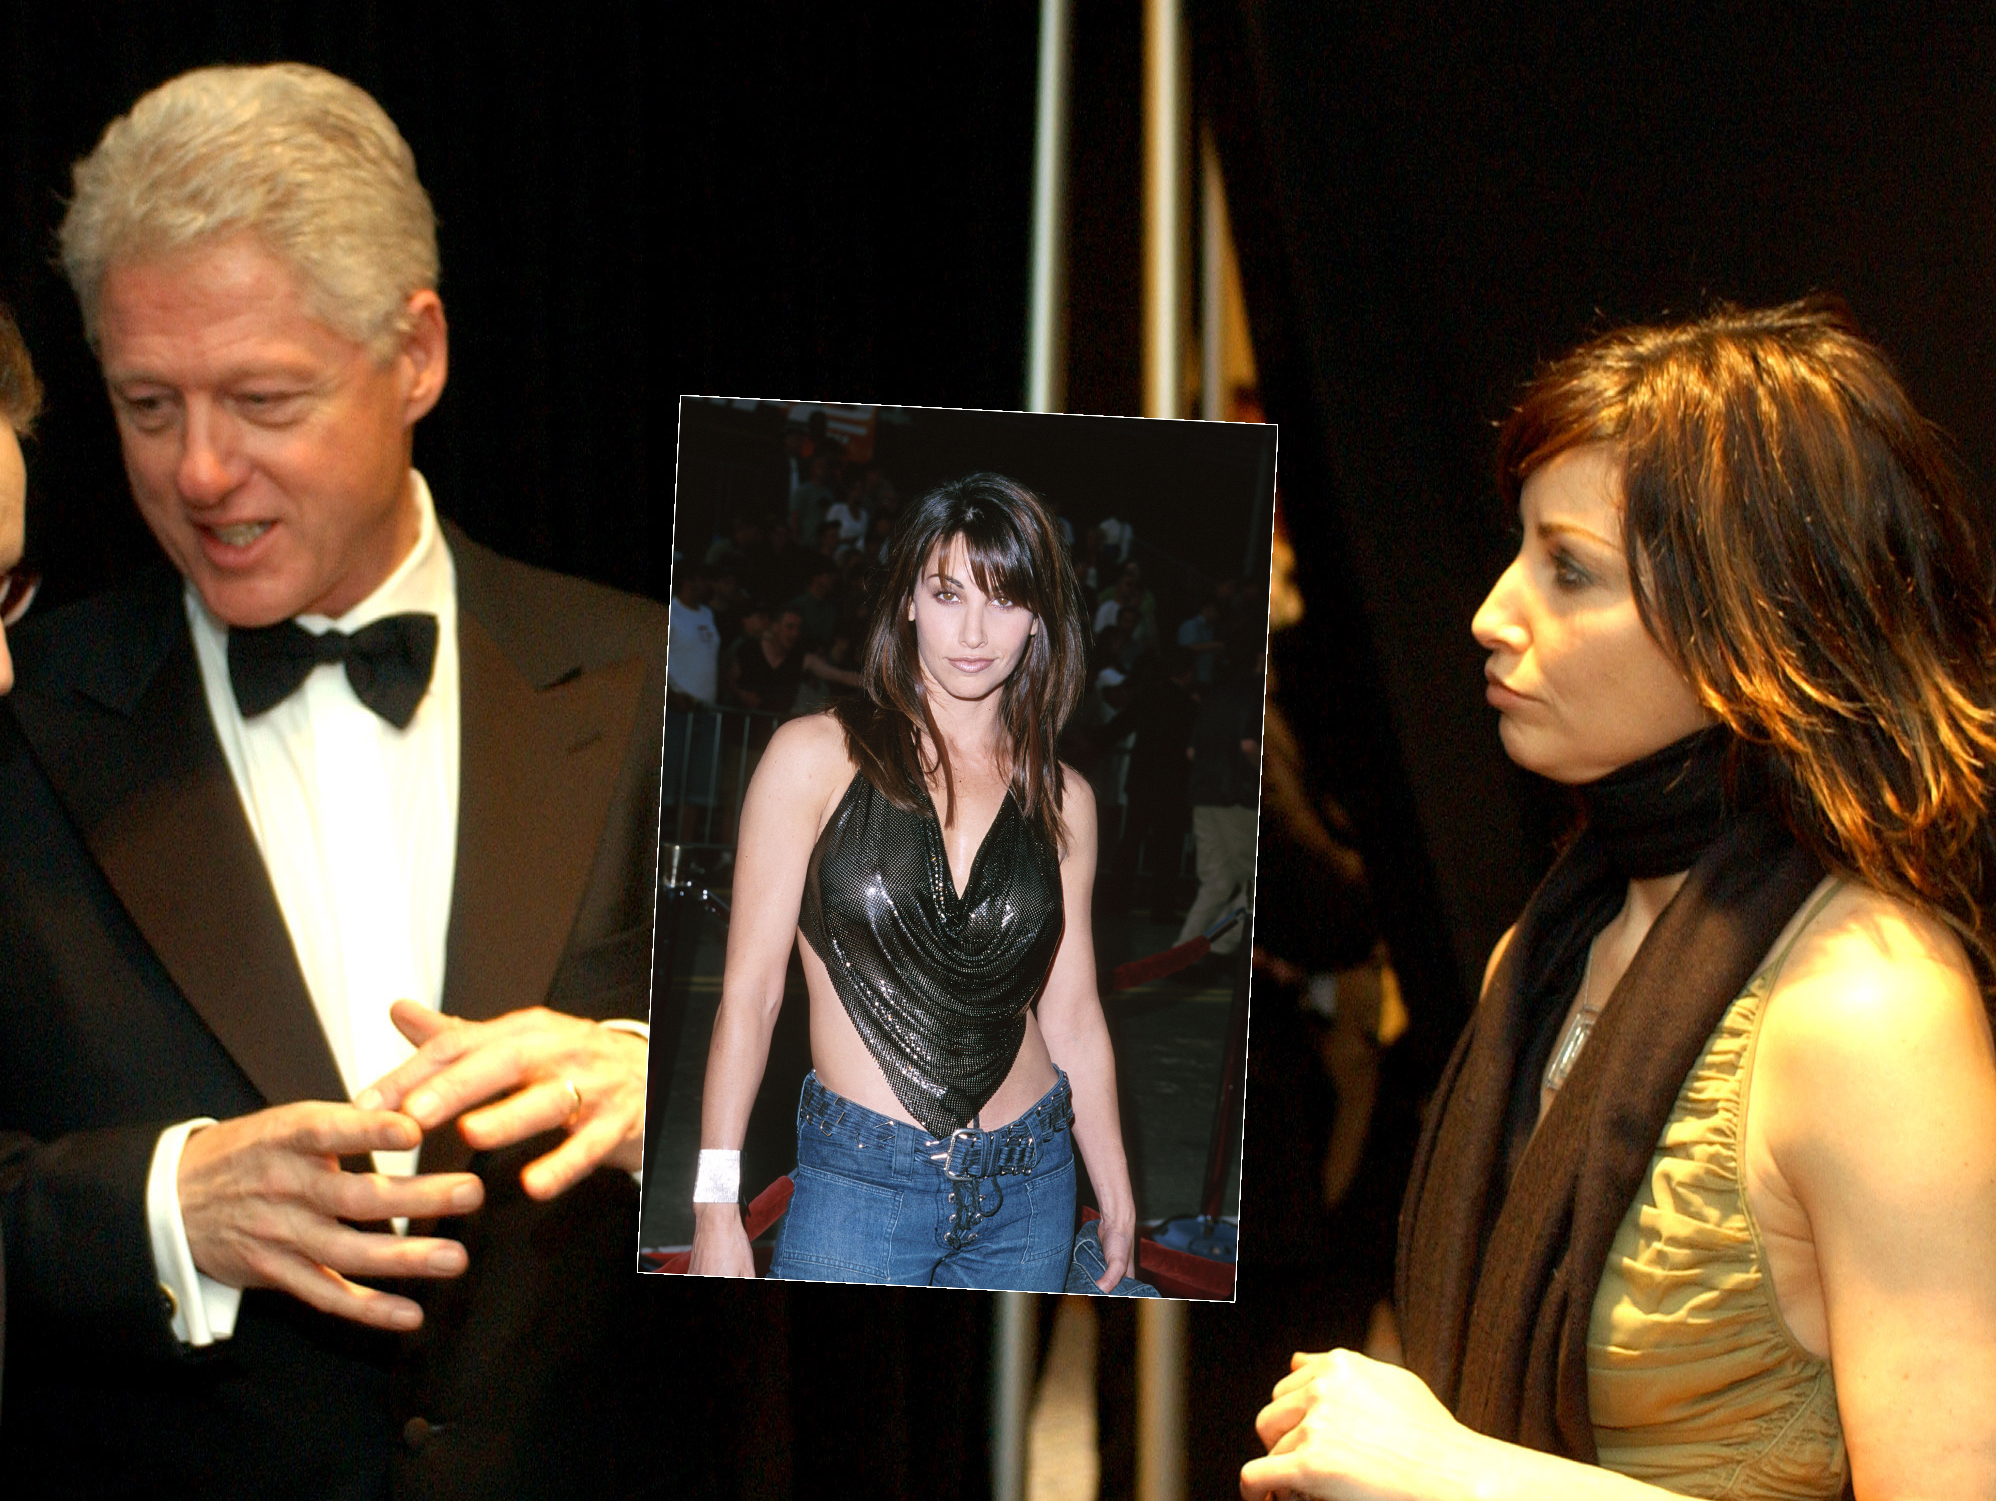 Gina Gershon and Bill Clinton. Photos: WireImage: www.aww.com.au/news-features/news-stories/2014/2/bill-clintons...